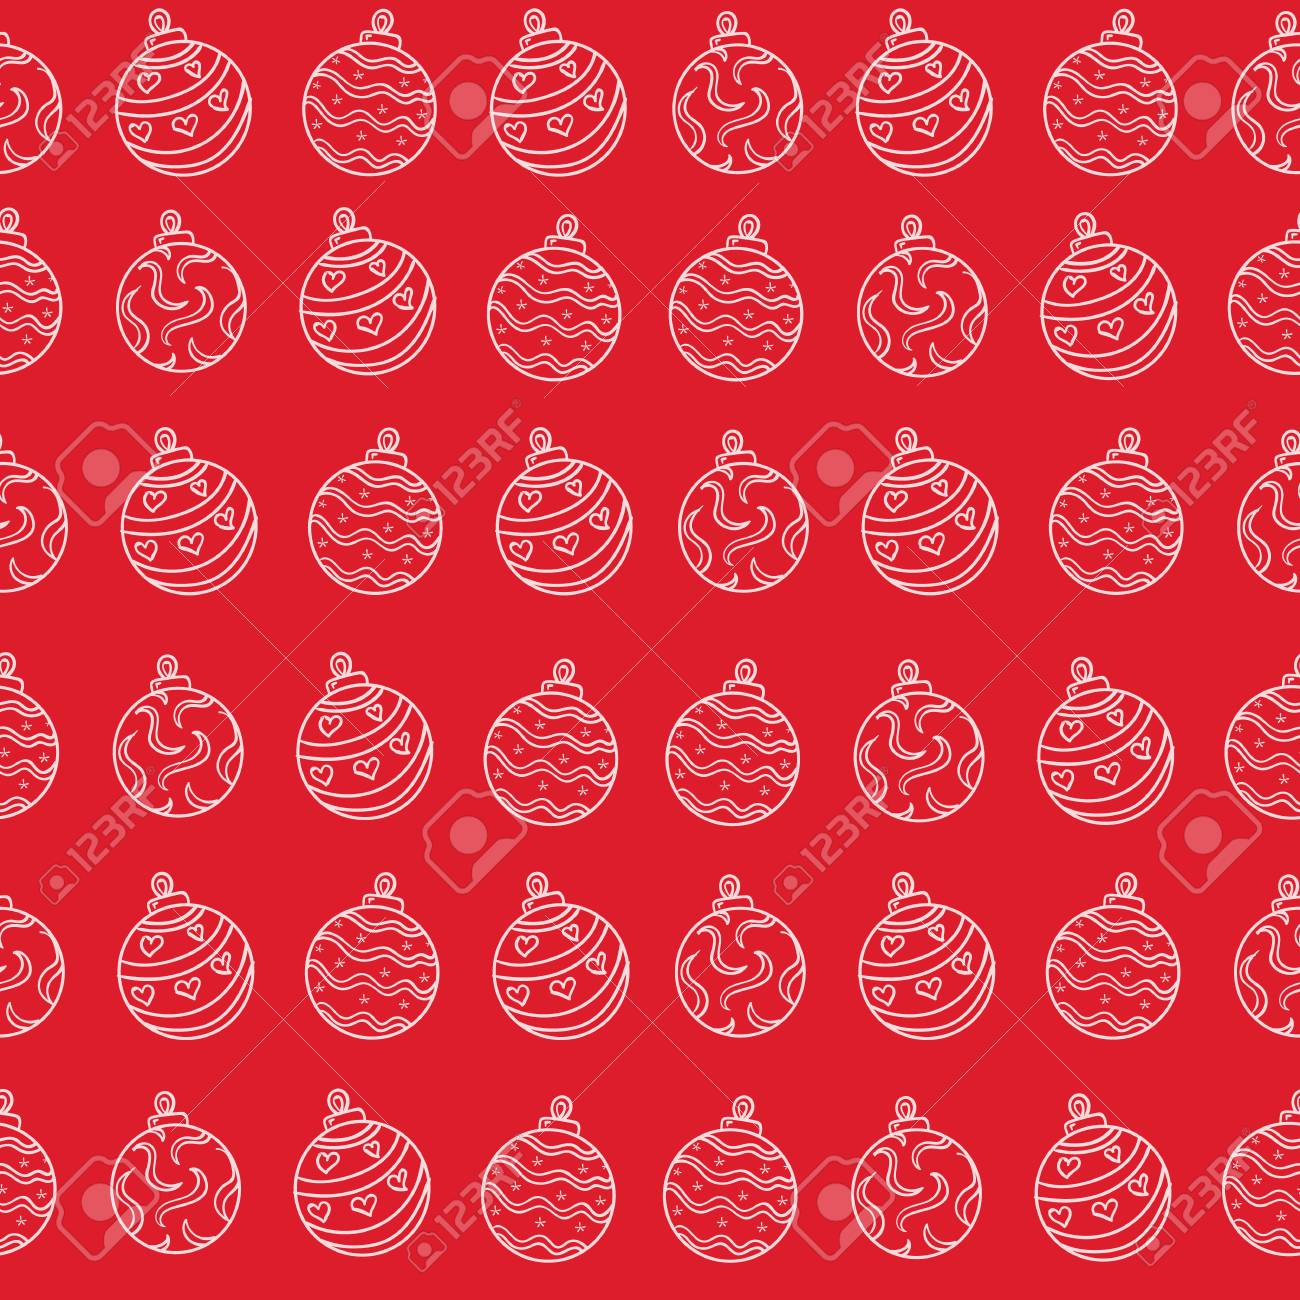 Christmas Texture.Merry Christmas Texture On Red Background